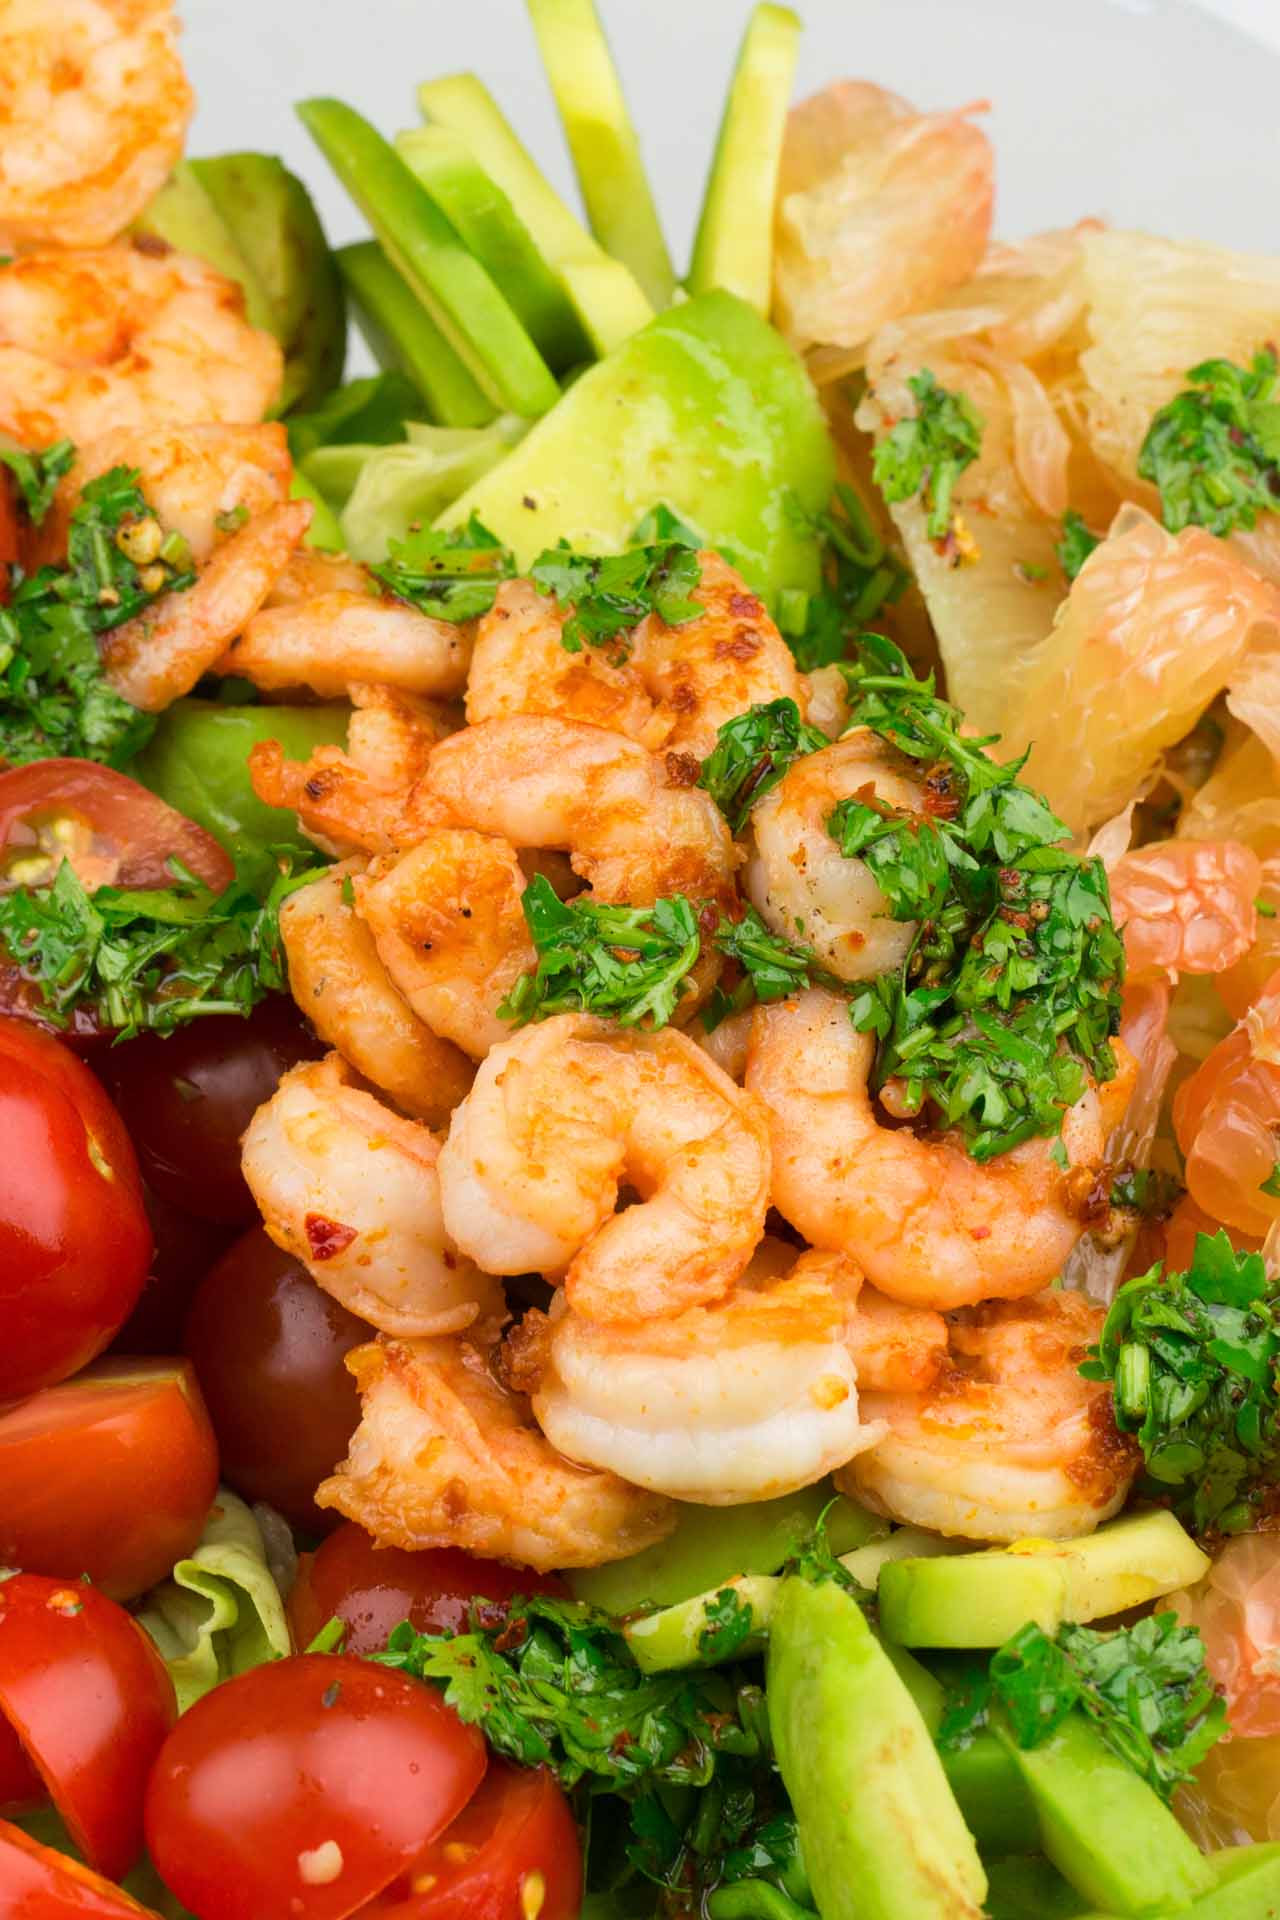 Healthy Dinner Recipes  19 Healthy Dinner Ideas That Anyone Can Cook With Minimal